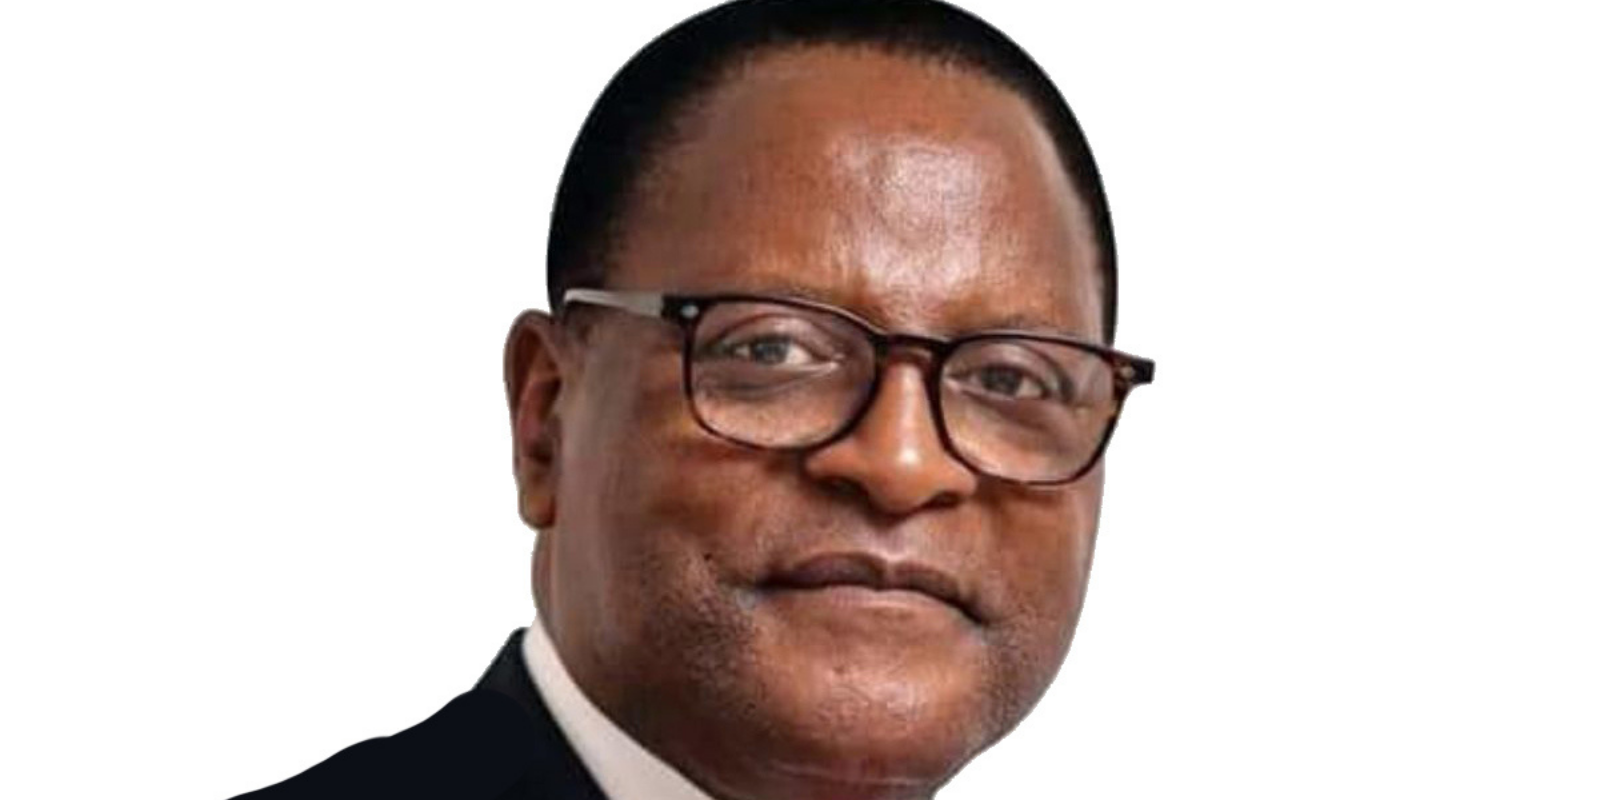 Lazarus Chakwela is the president of which country?